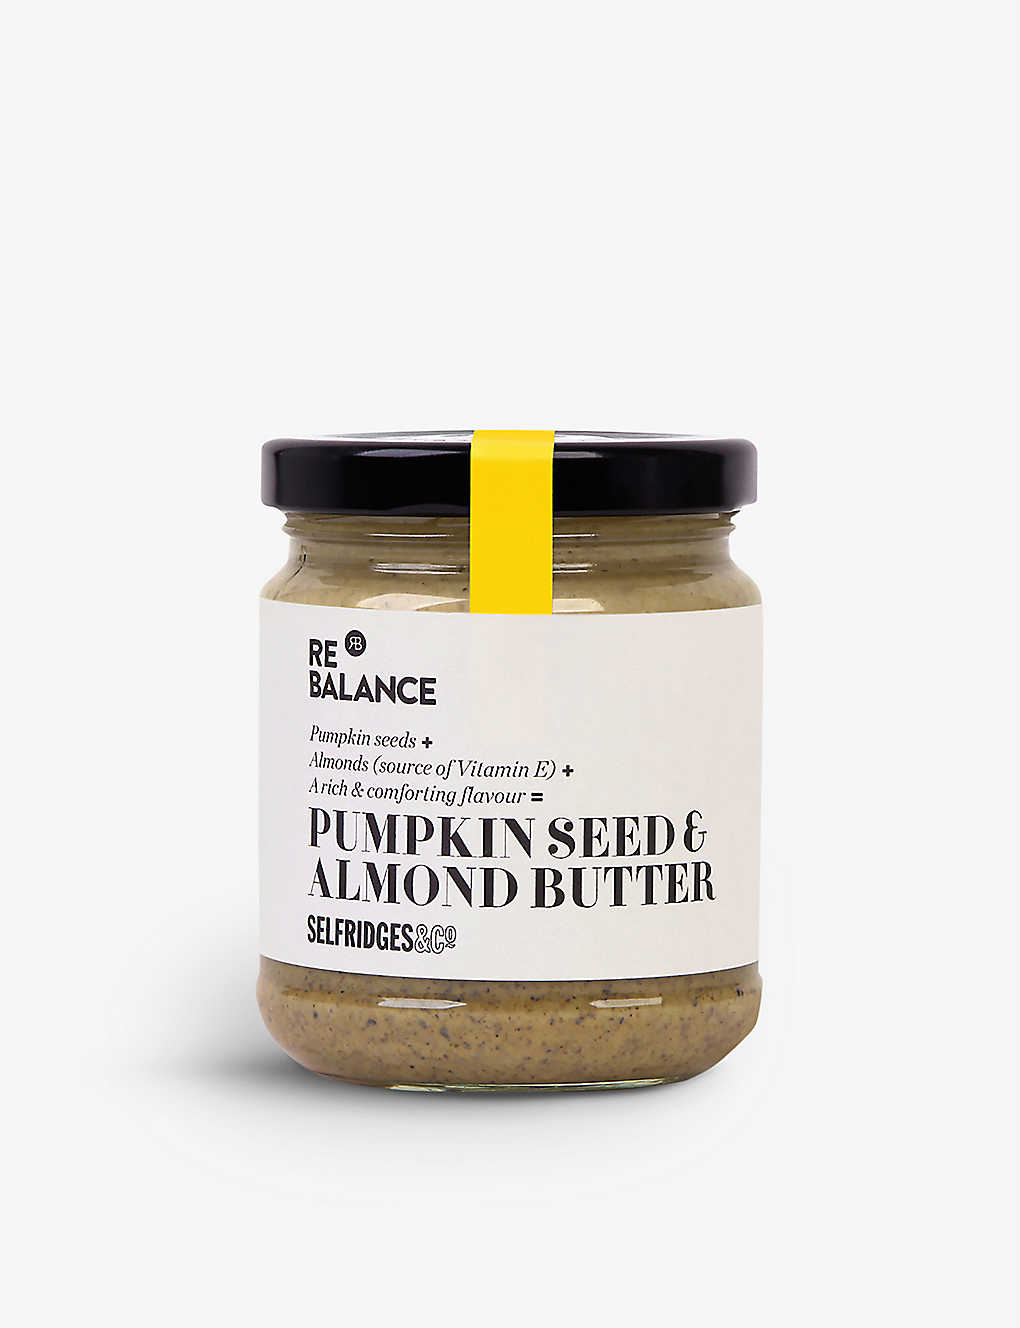 SELFRIDGES SELECTION: Pumpkin seed & almond butter 190g